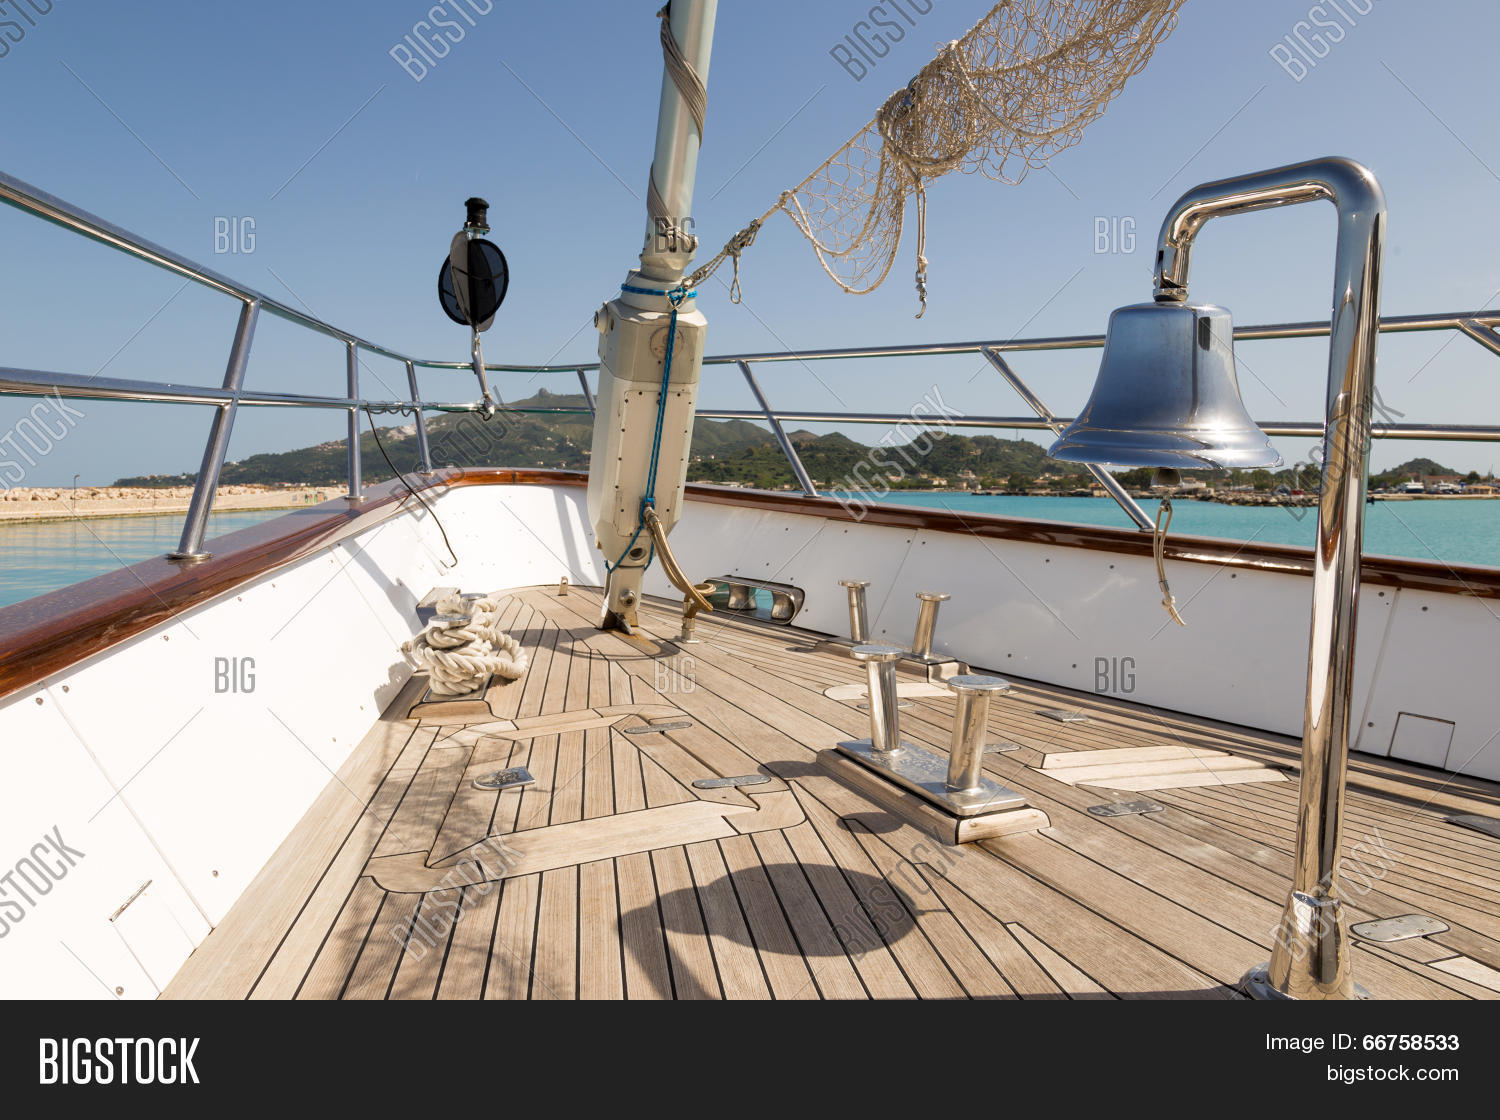 Luxury Sail Boat Parts Image & Photo (Free Trial) | Bigstock